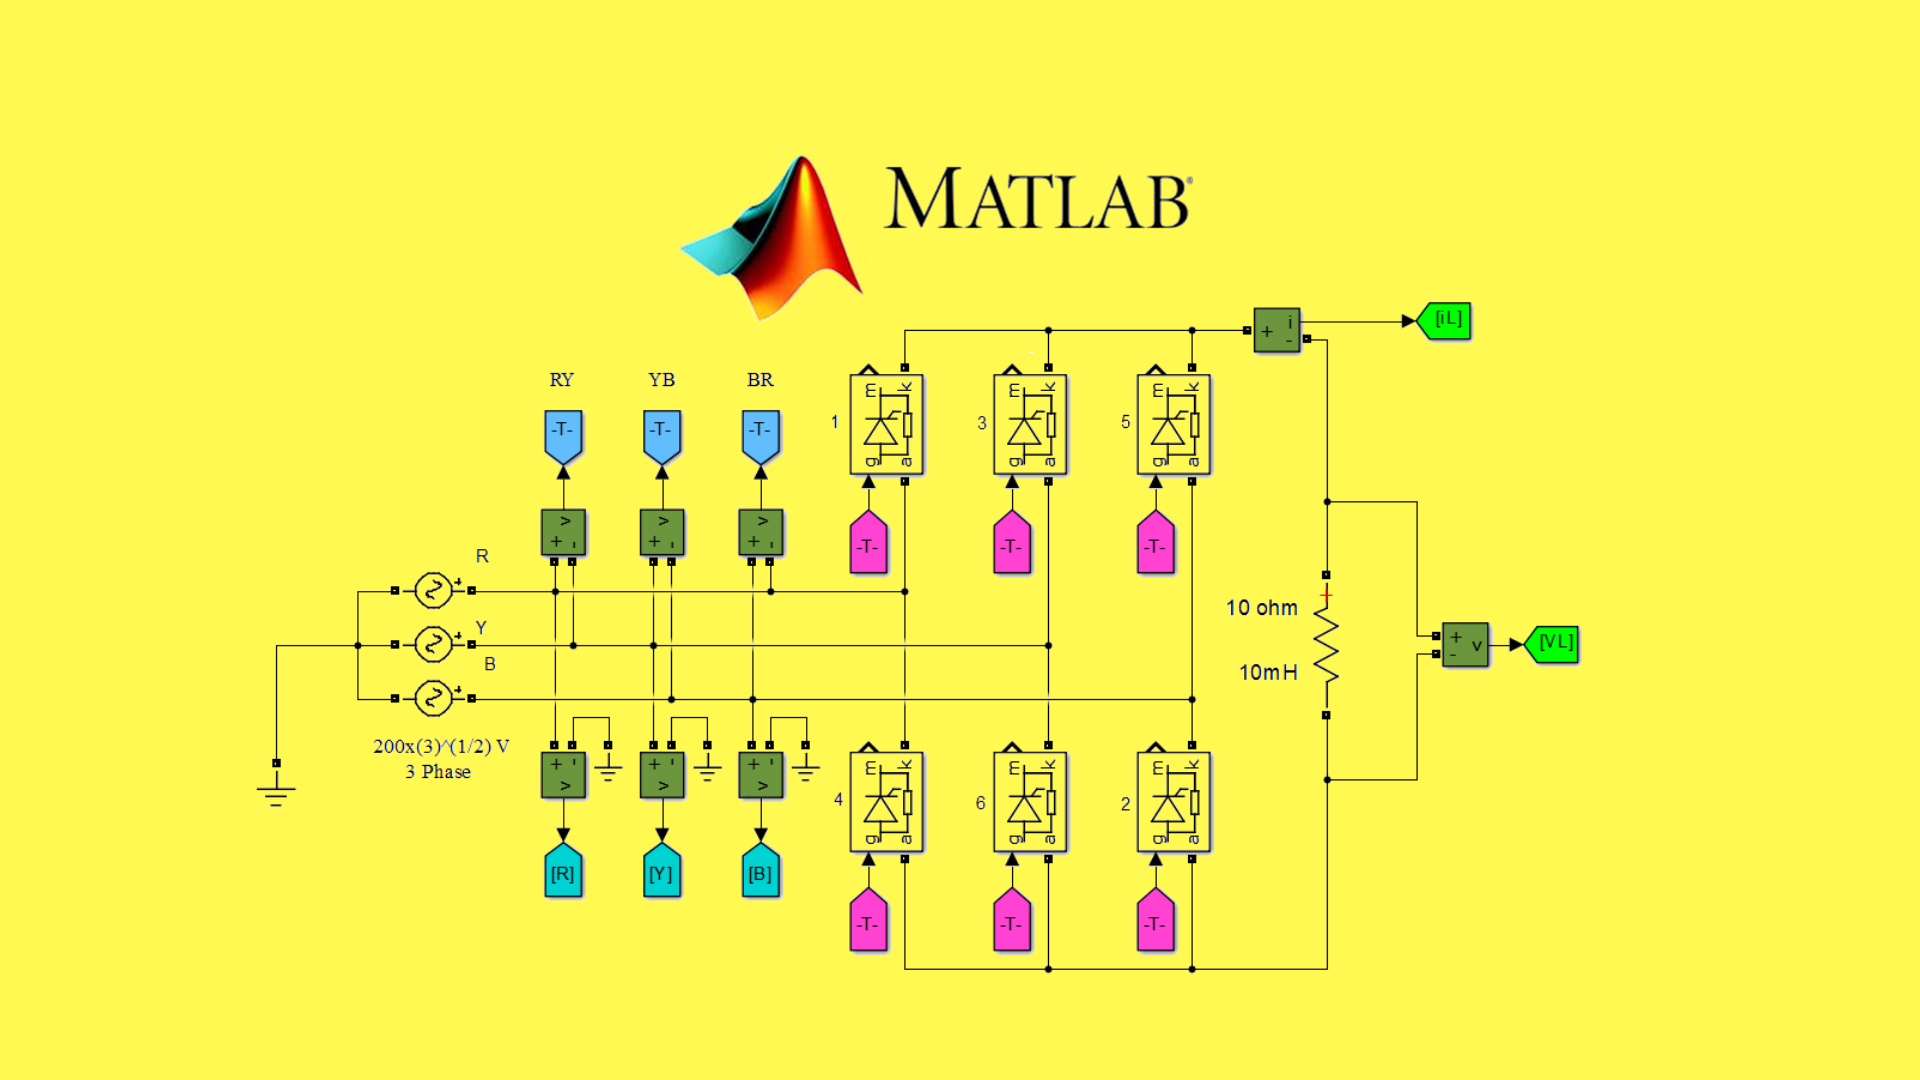 MATLAB for Power Electronics: Simulation & Analysis | Simpliv